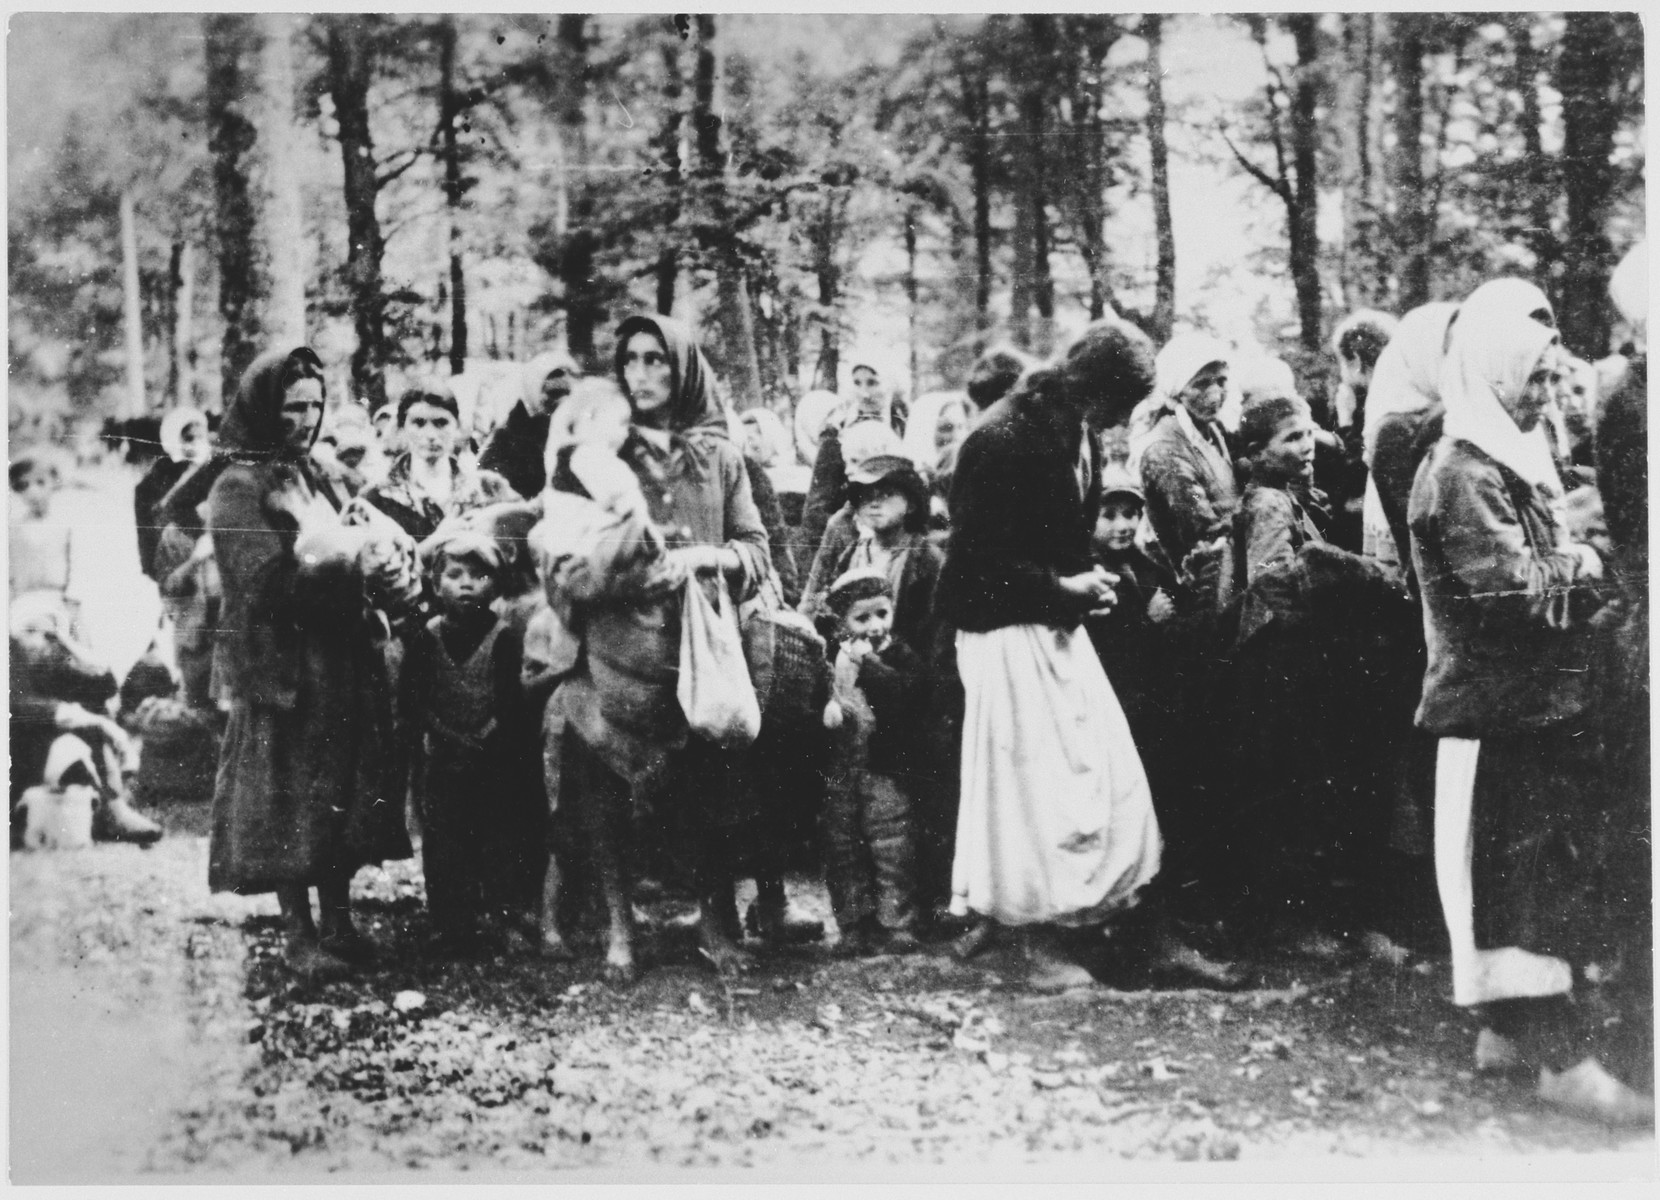 Yugoslav women and children are gathered in a wooded area during a deportation action.